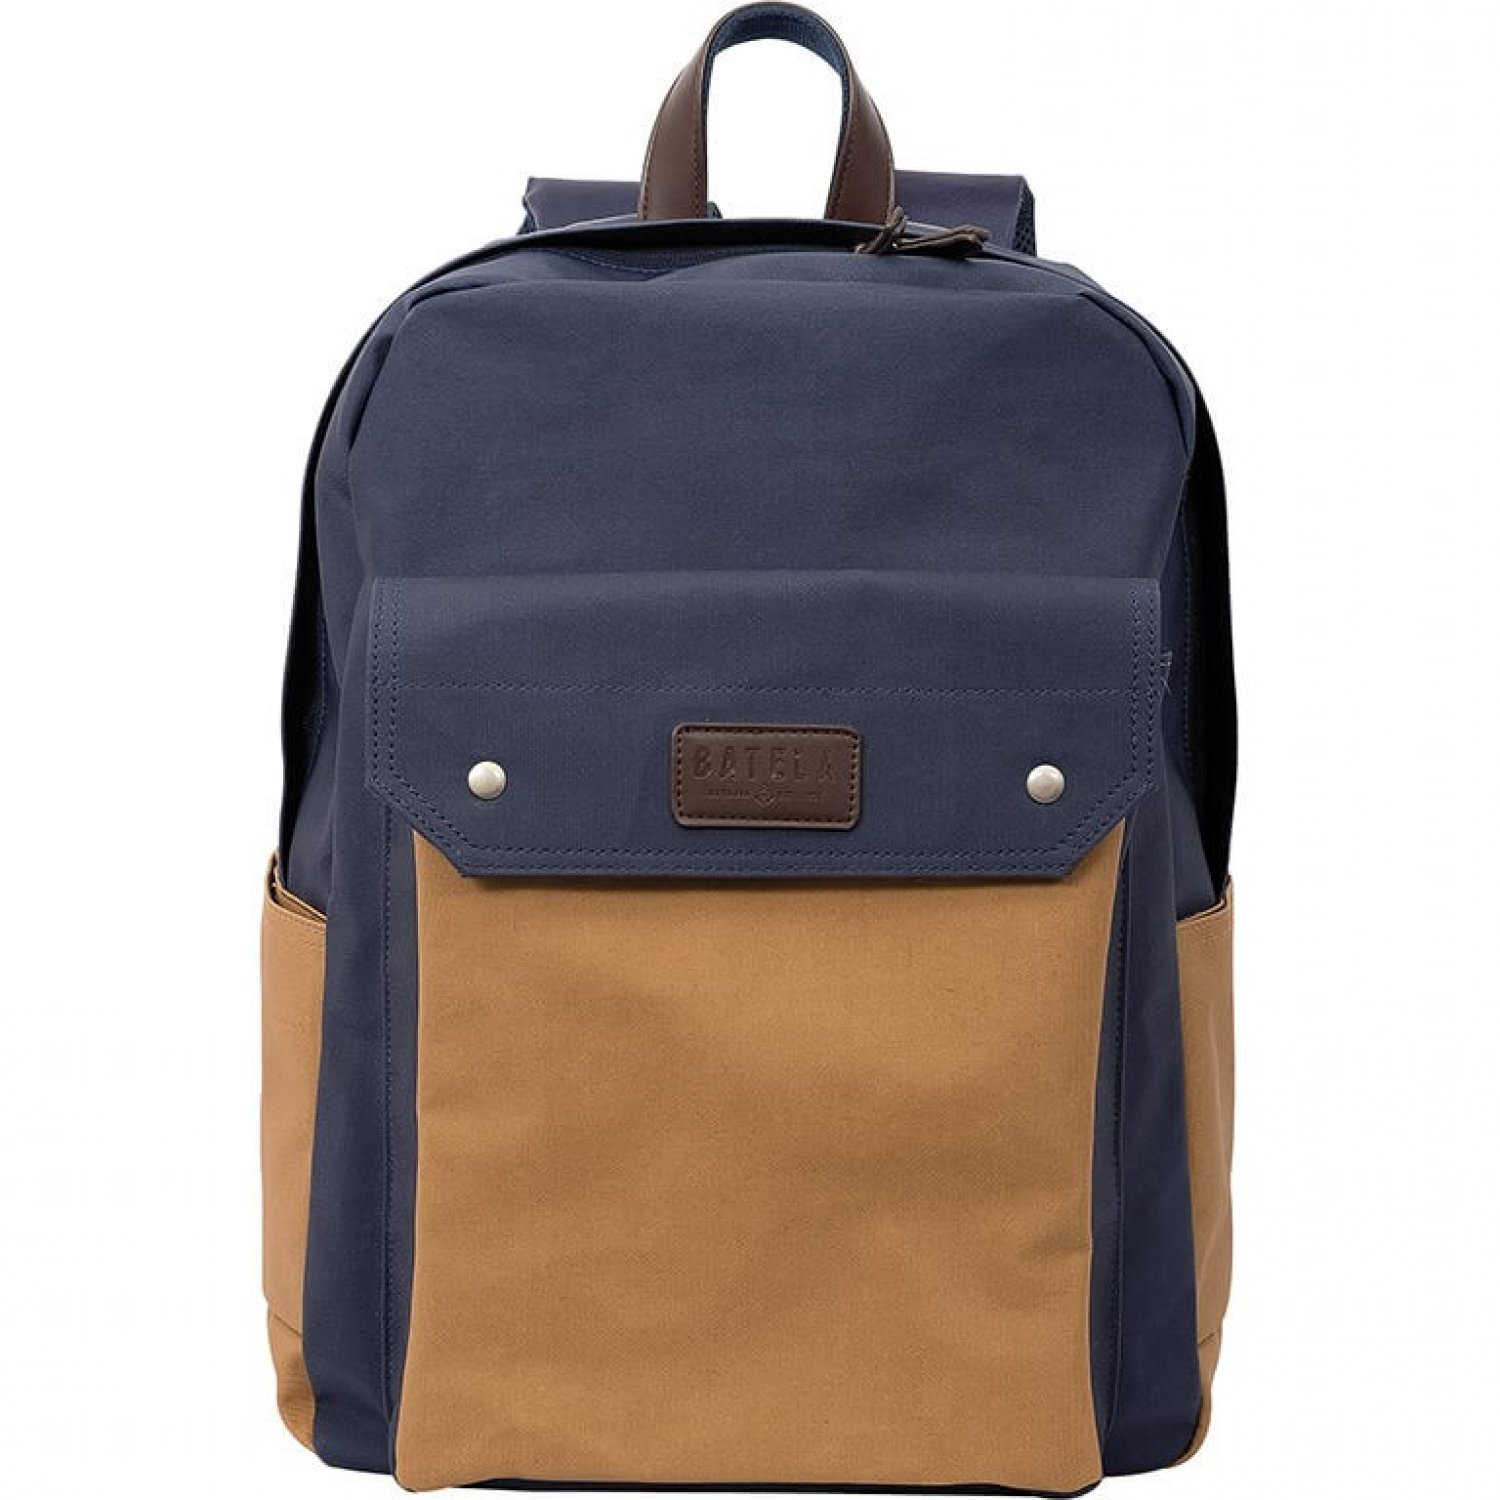 Rucsac casual din canvas